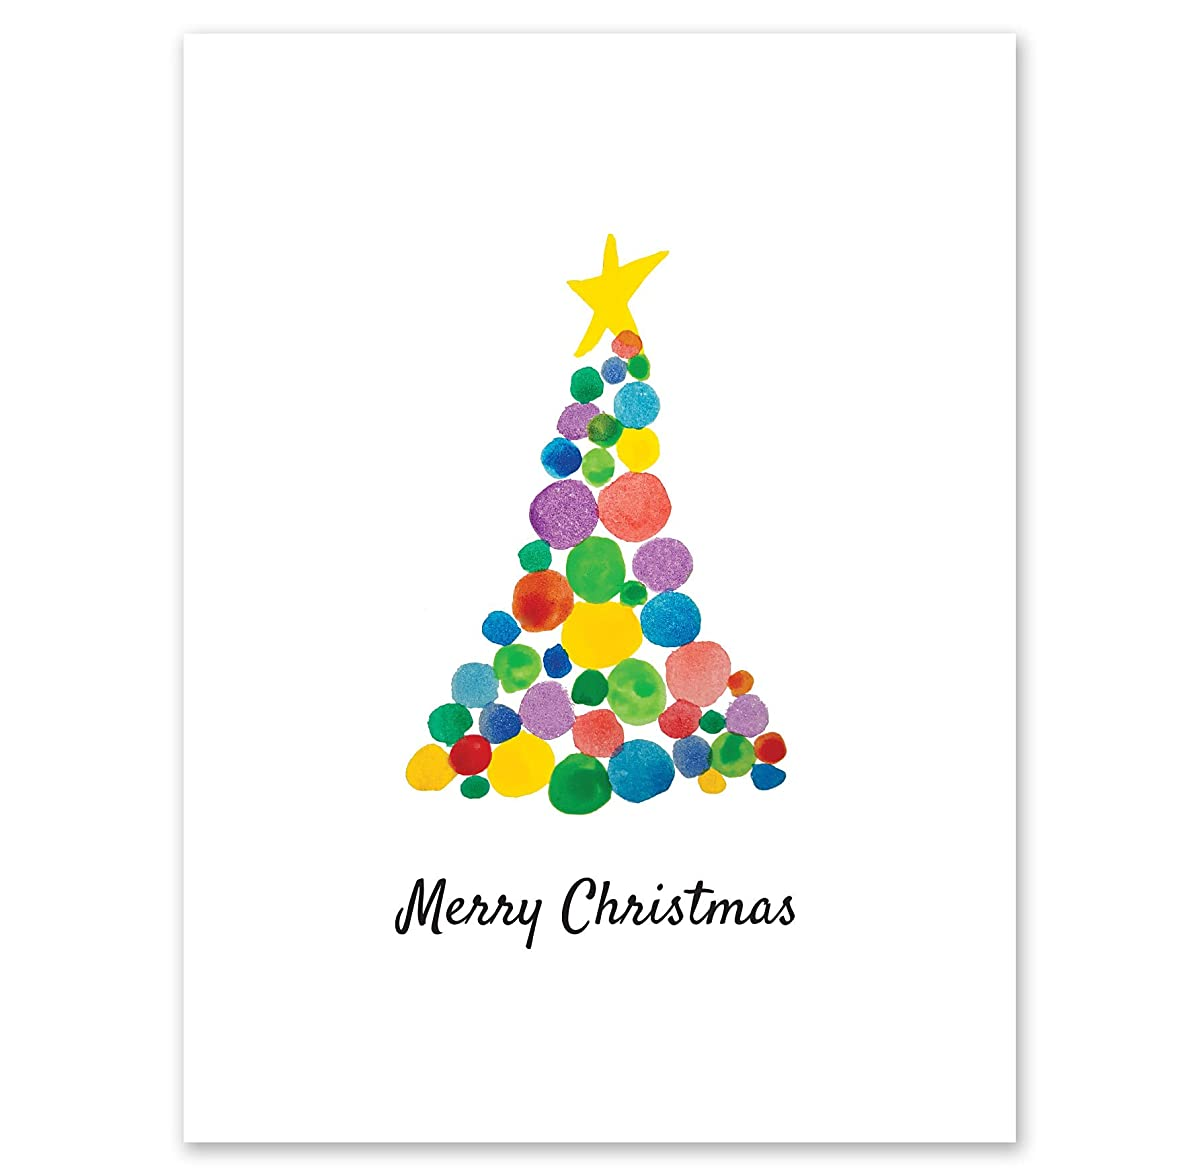 Rainbow Tree Personalized Christmas Greeting Cards – 4? inches x 5? inches, Heavyweight Stock, Matching Envelopes, (Set of 20), by Fine Stationery